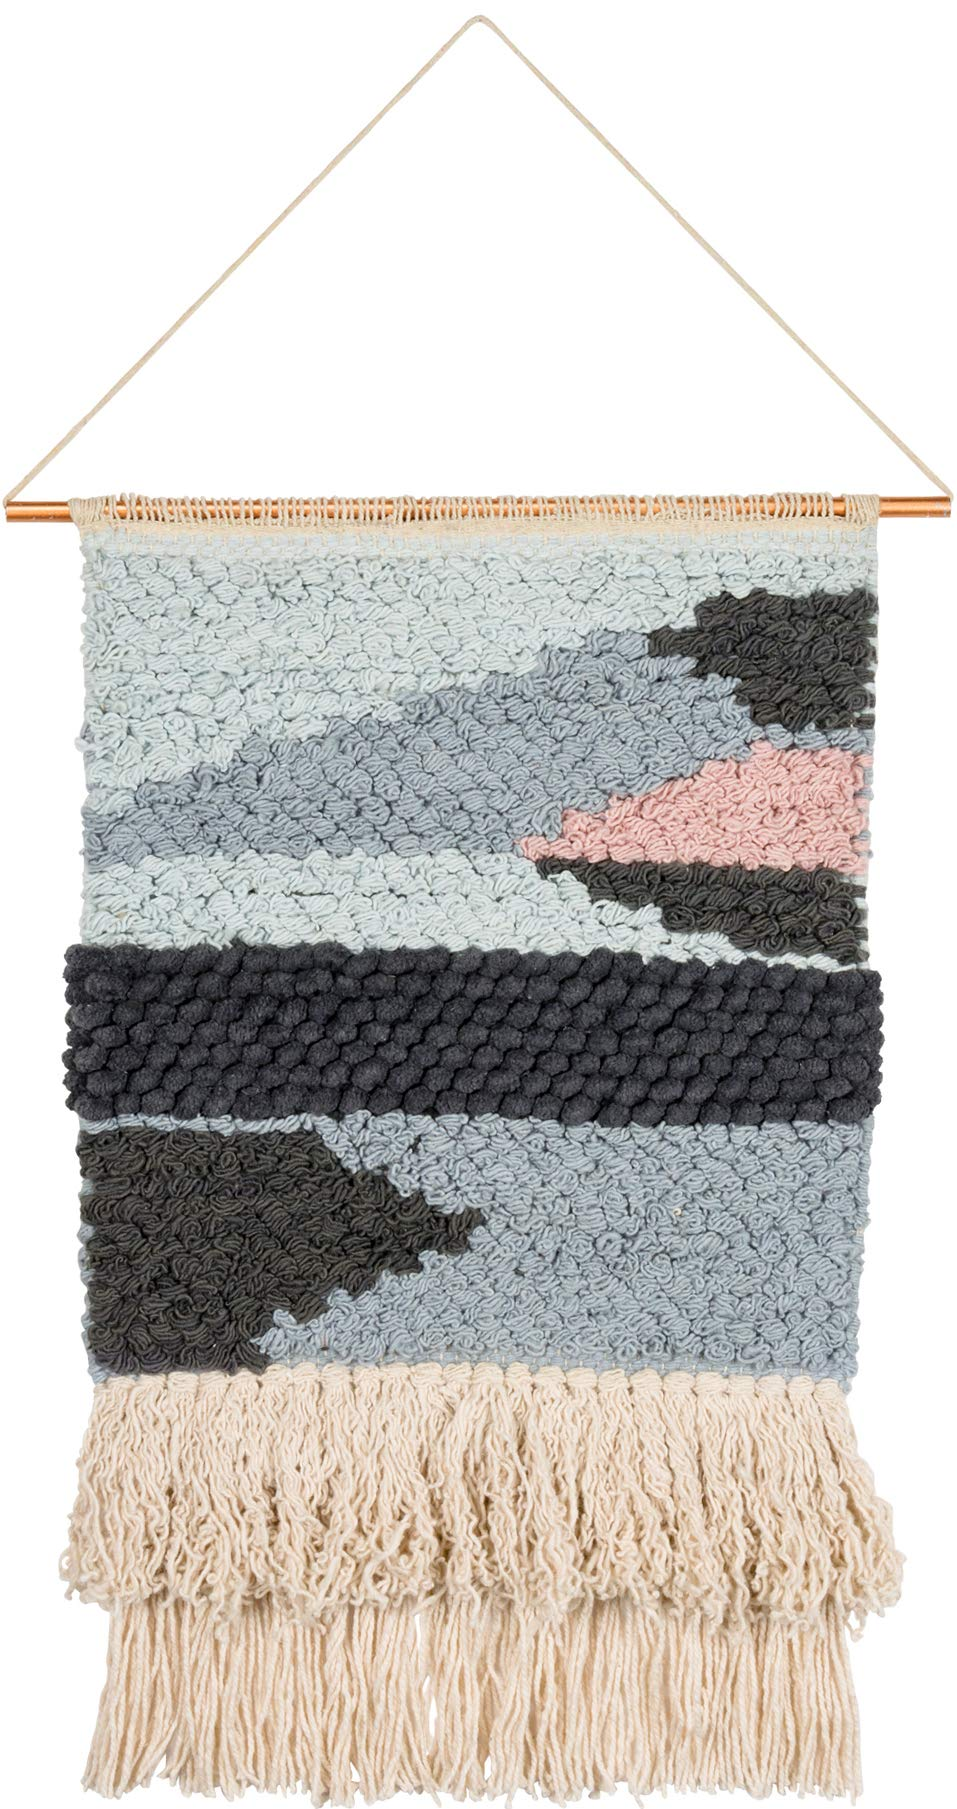 Primitives by Kathy Explorer Woven Wall Hanging, Cotton and Metal, 13 inches x 22 inches